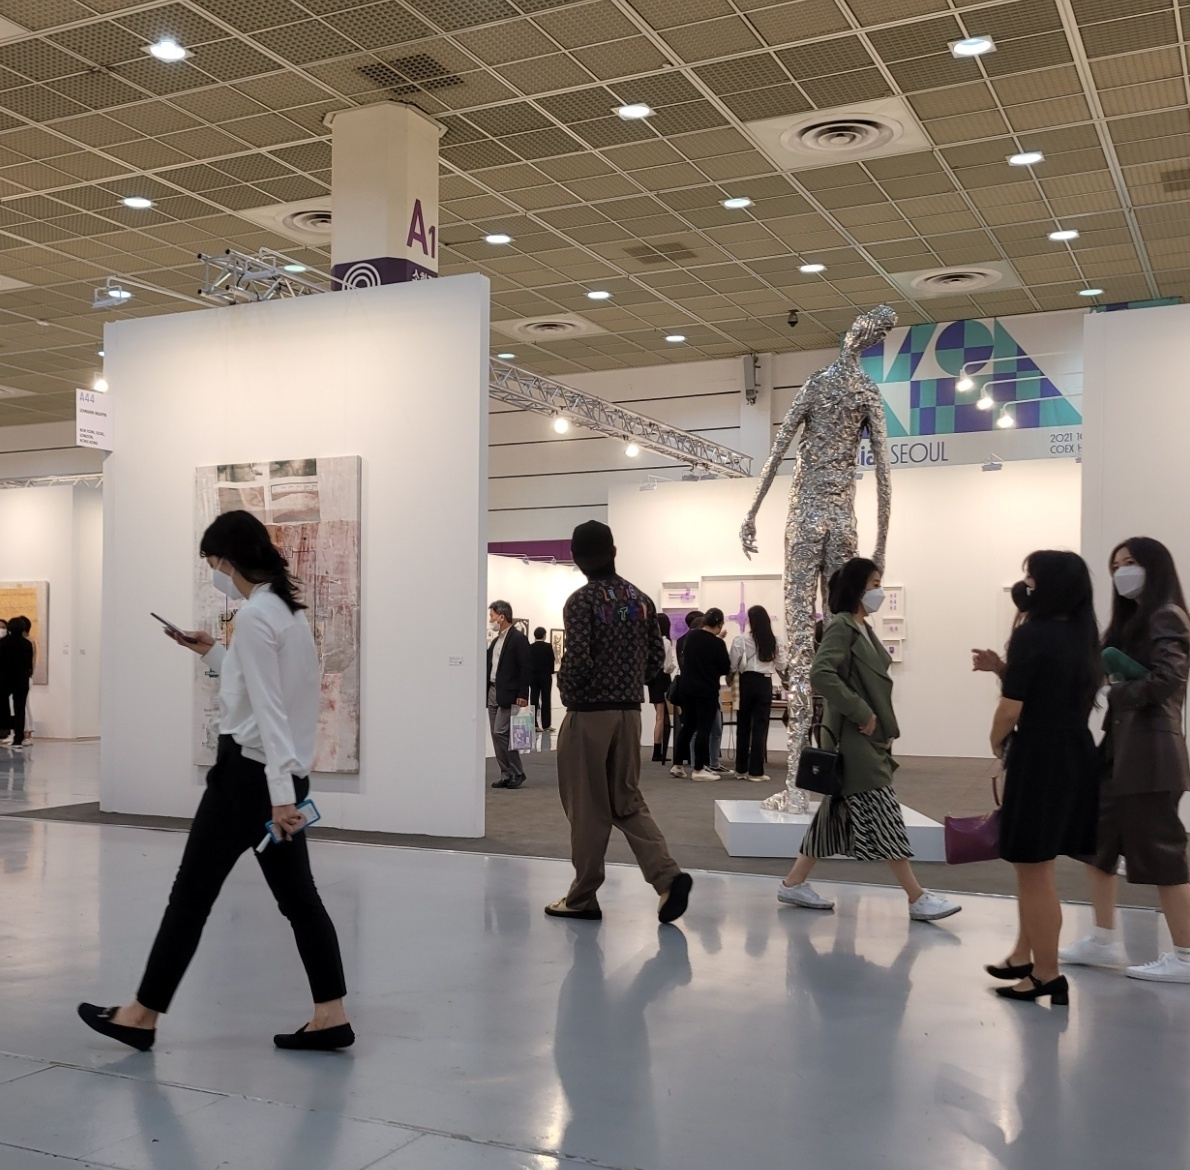 BTS' V is seen walking through the exhibition hall at KIAF Seoul 2021 on Wednesday evening. (Park Yuna/The Korea Herald)